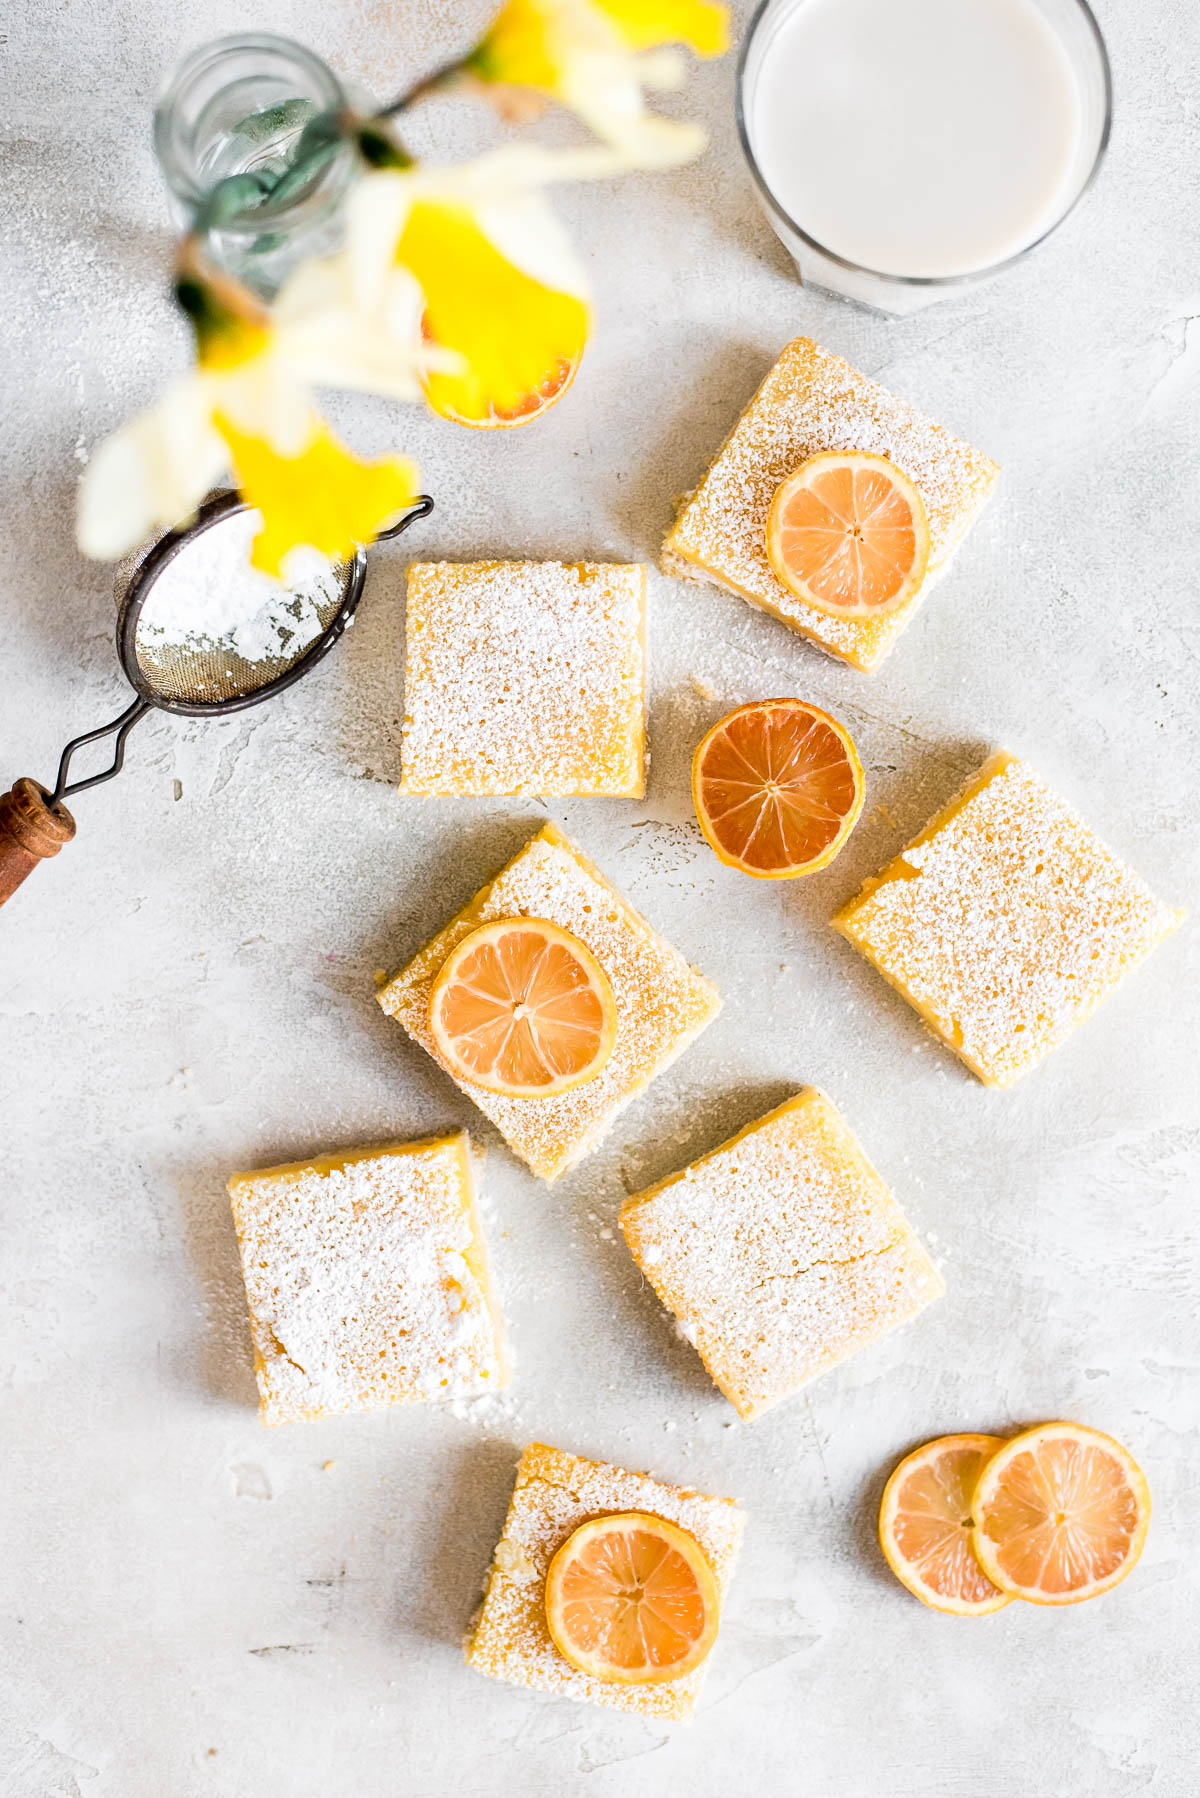 lemon bars topped with powdered sugar and lemons